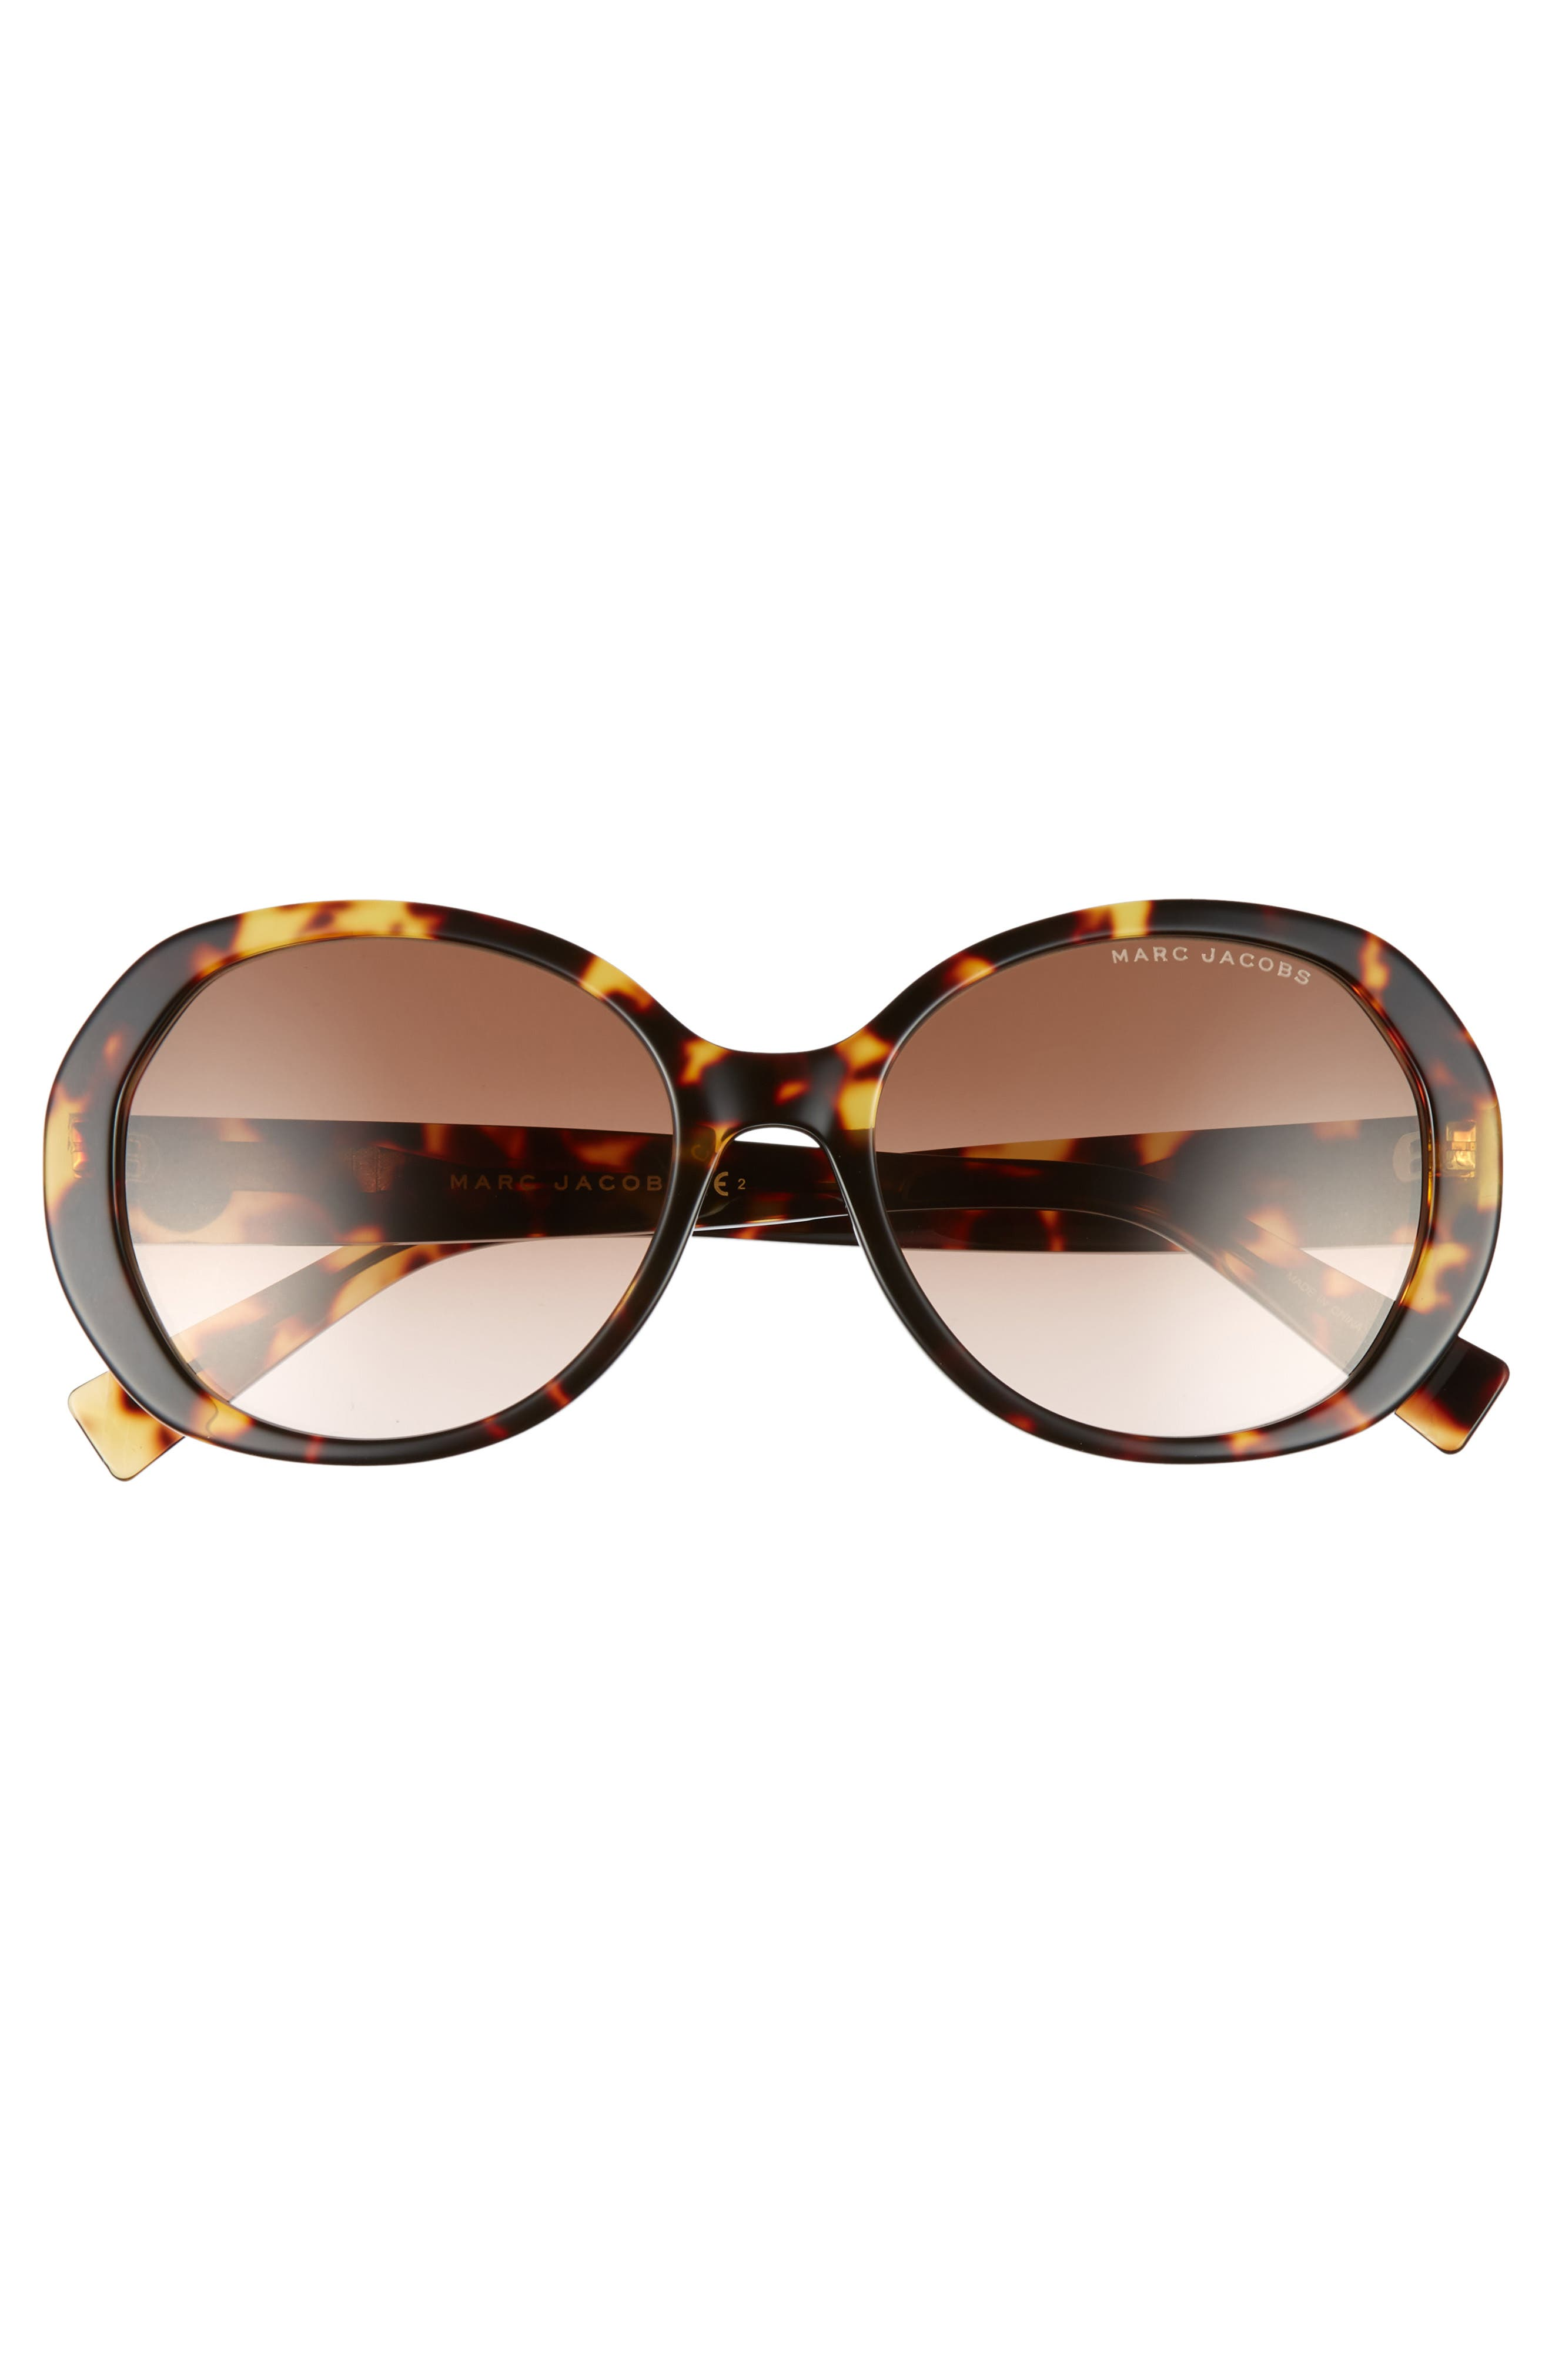 MARC JACOBS,                             56mm Round Sunglasses,                             Alternate thumbnail 3, color,                             BLACK DARK HAVANA